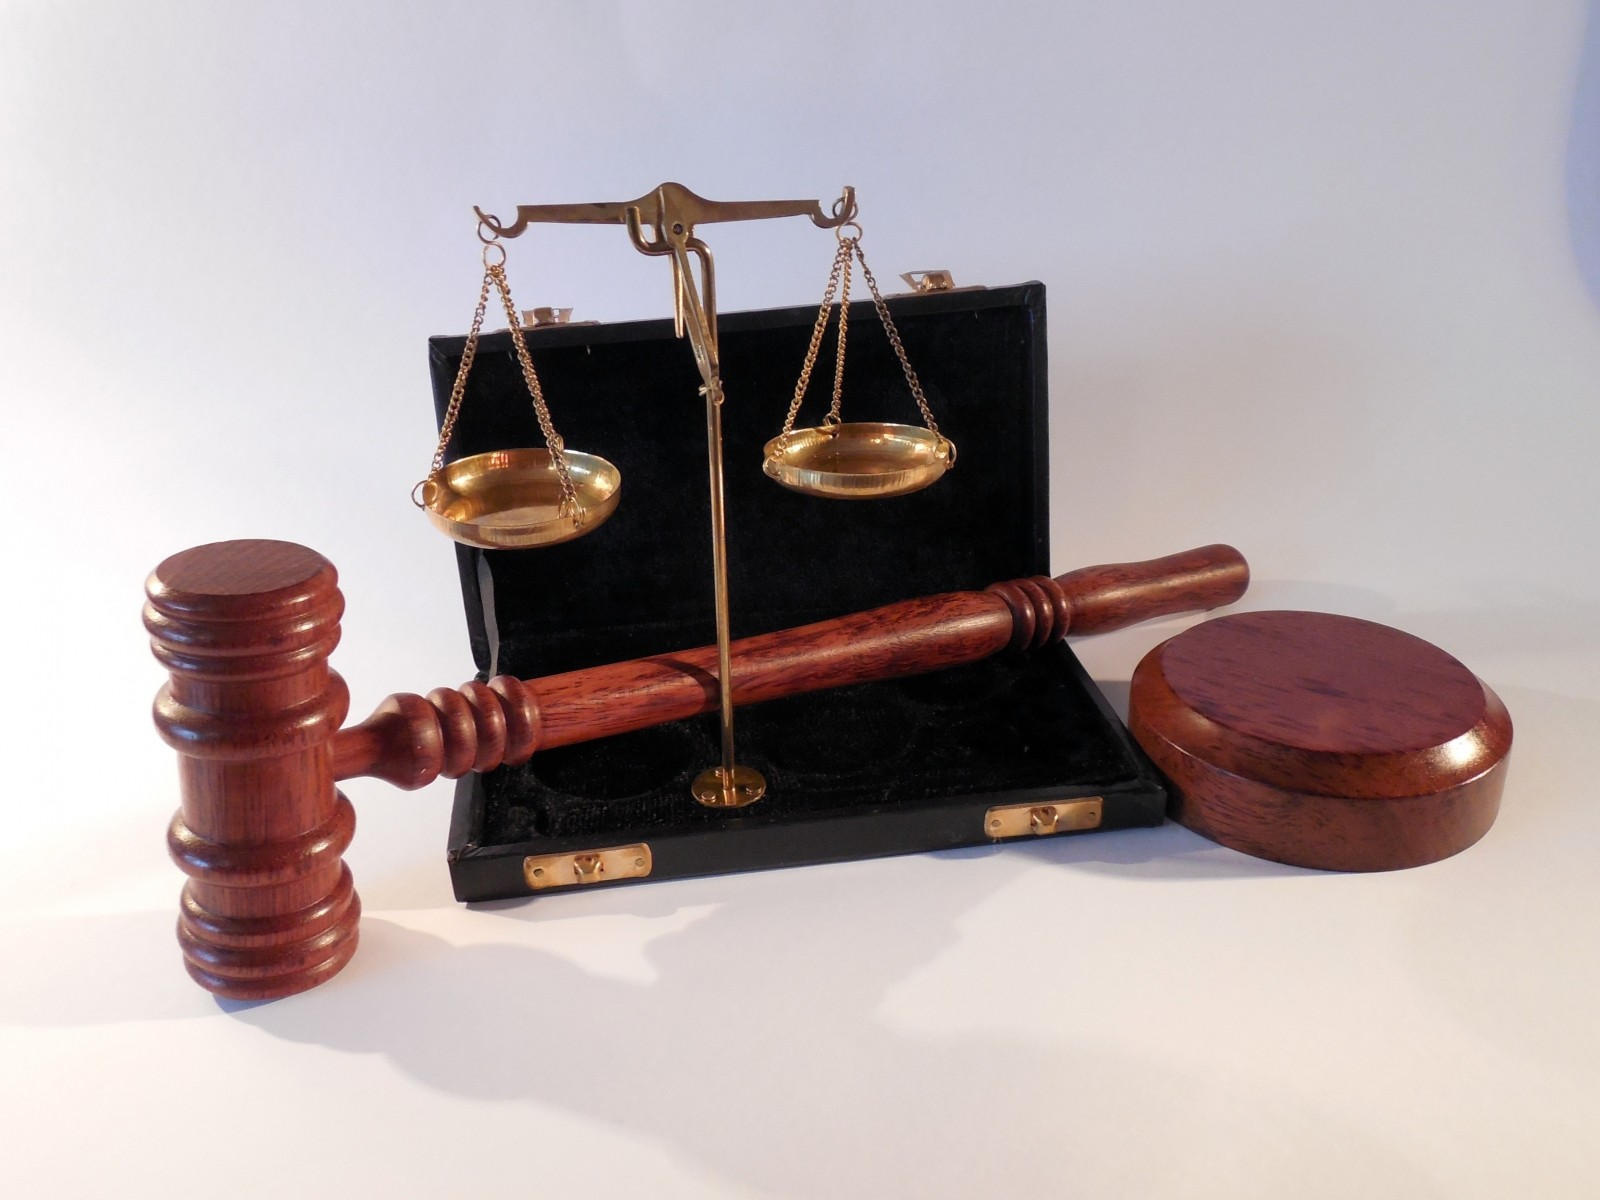 hammer-horizontal-court-justice-right-law-1